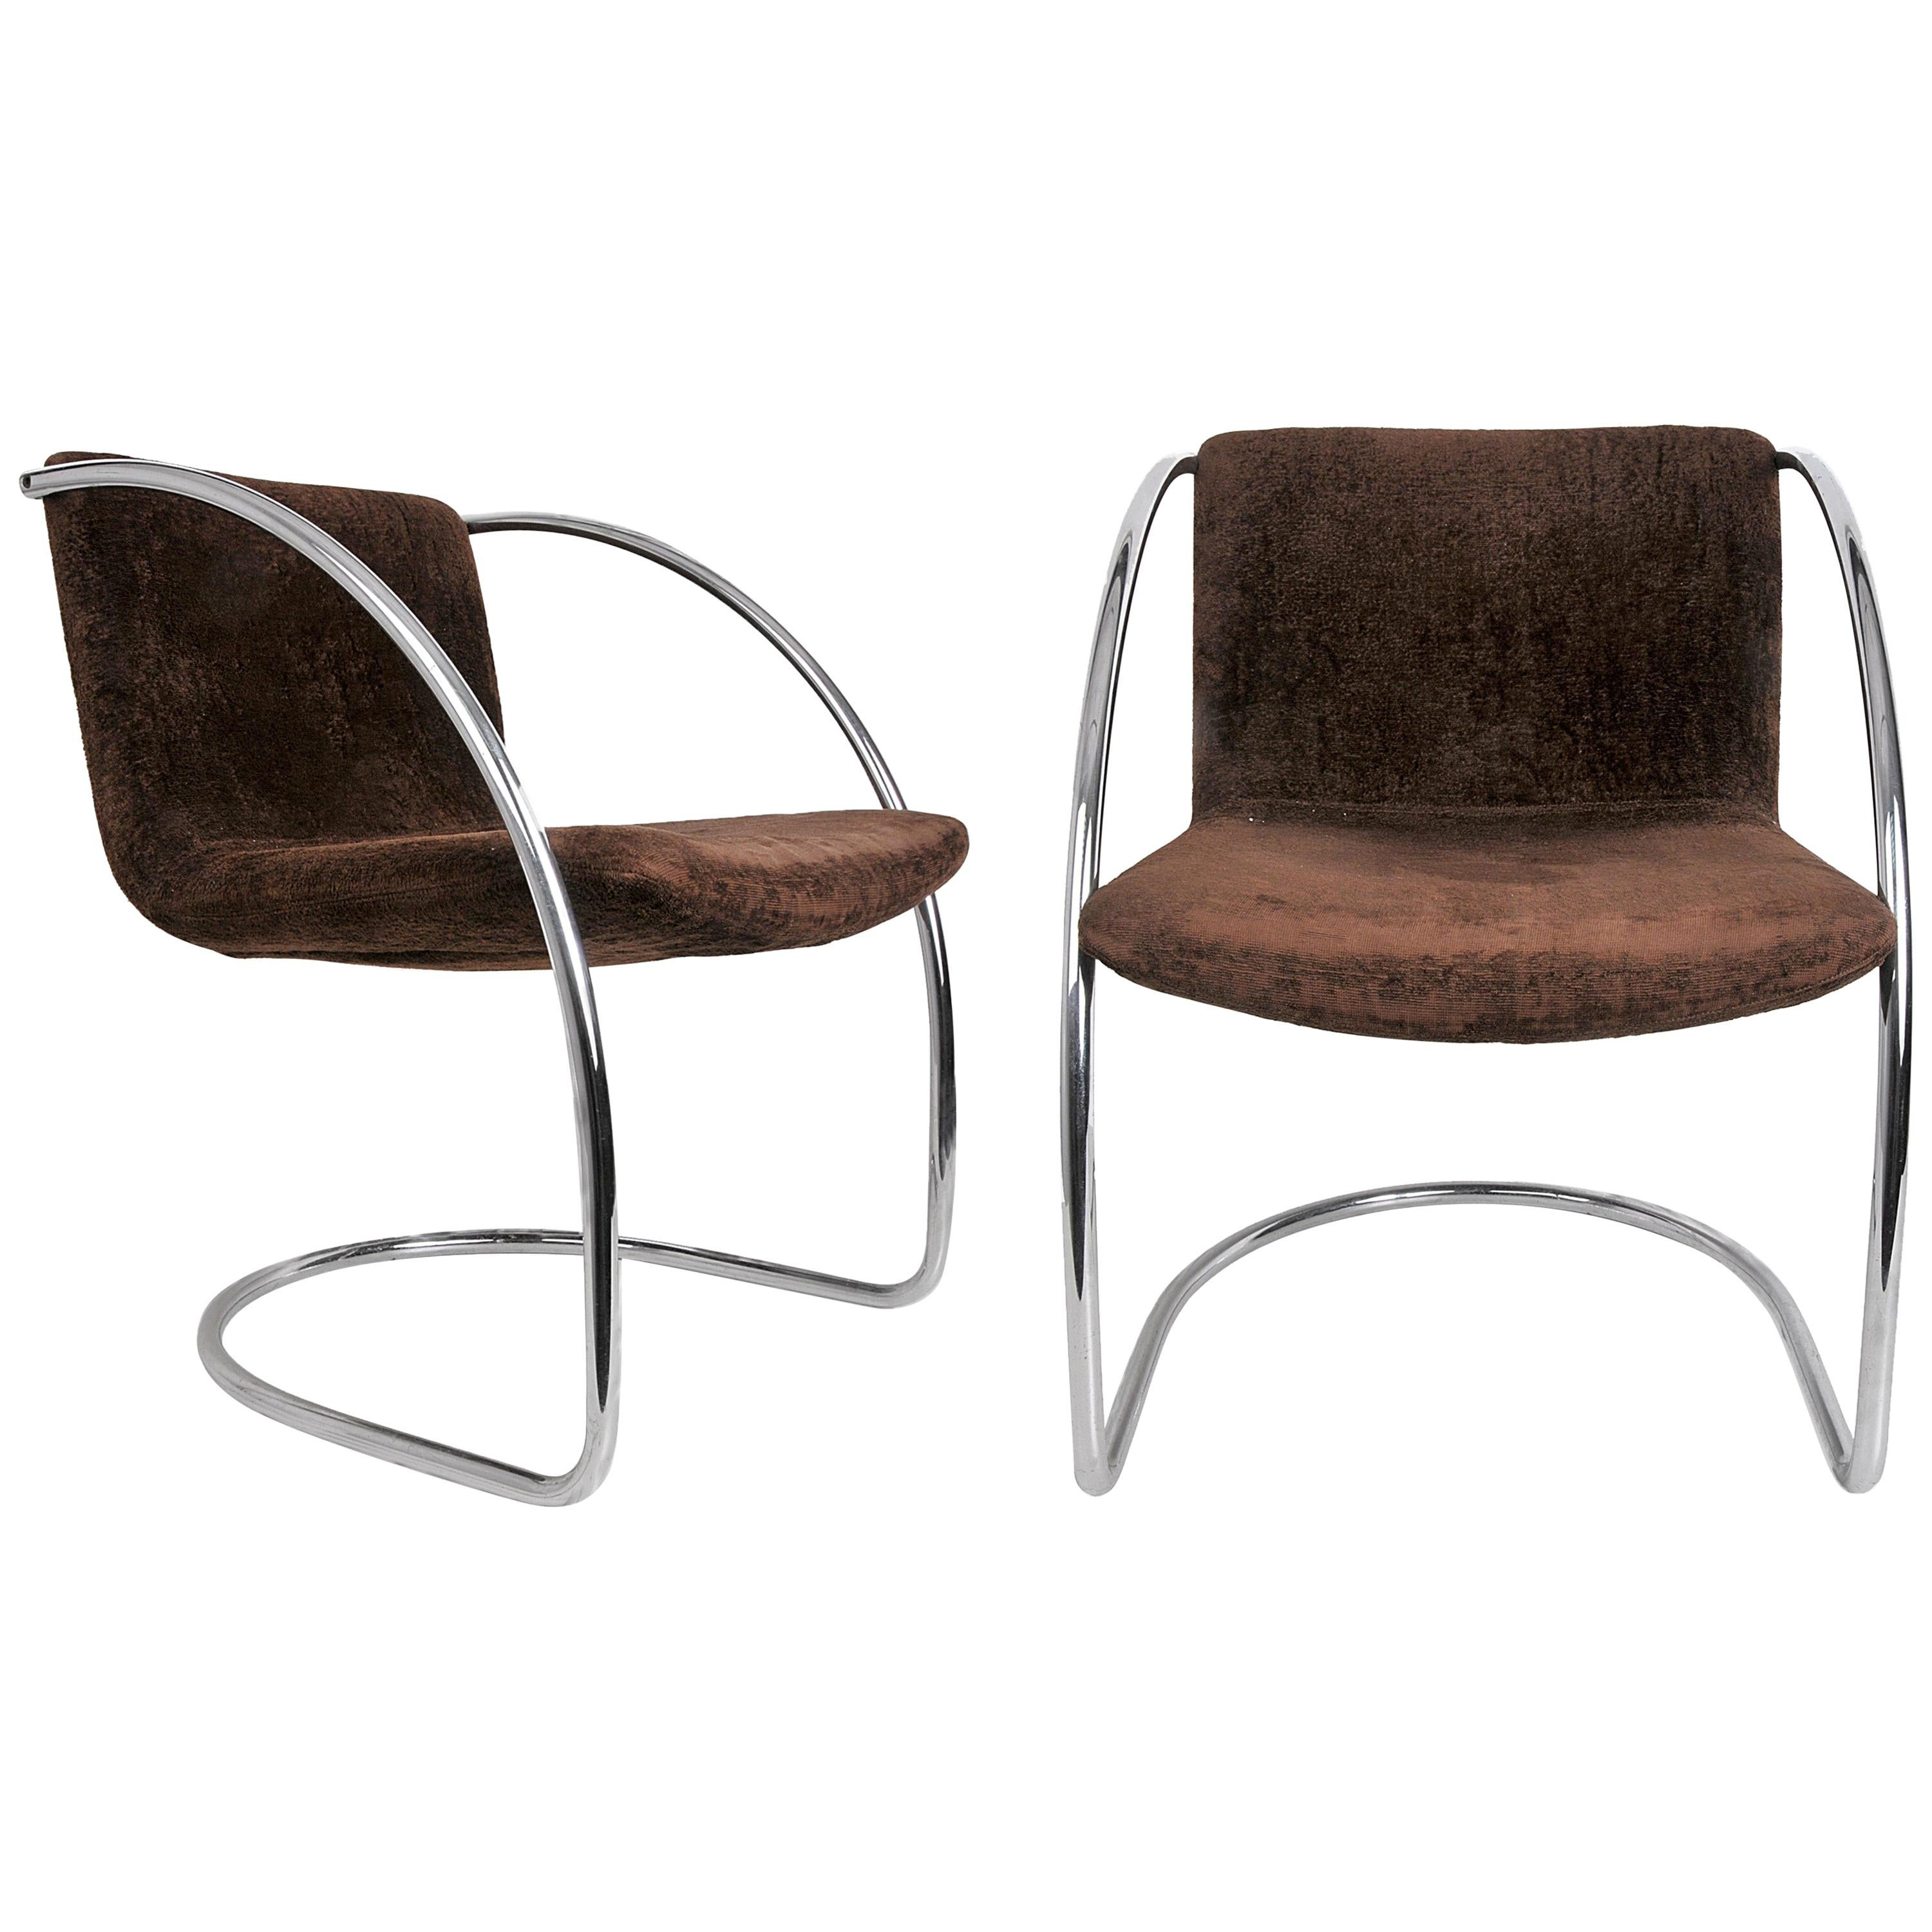 """Giovanni Offredi Brown Fabric and Steel """"Lens"""" Chair for Saporiti, Italy, 1960s"""